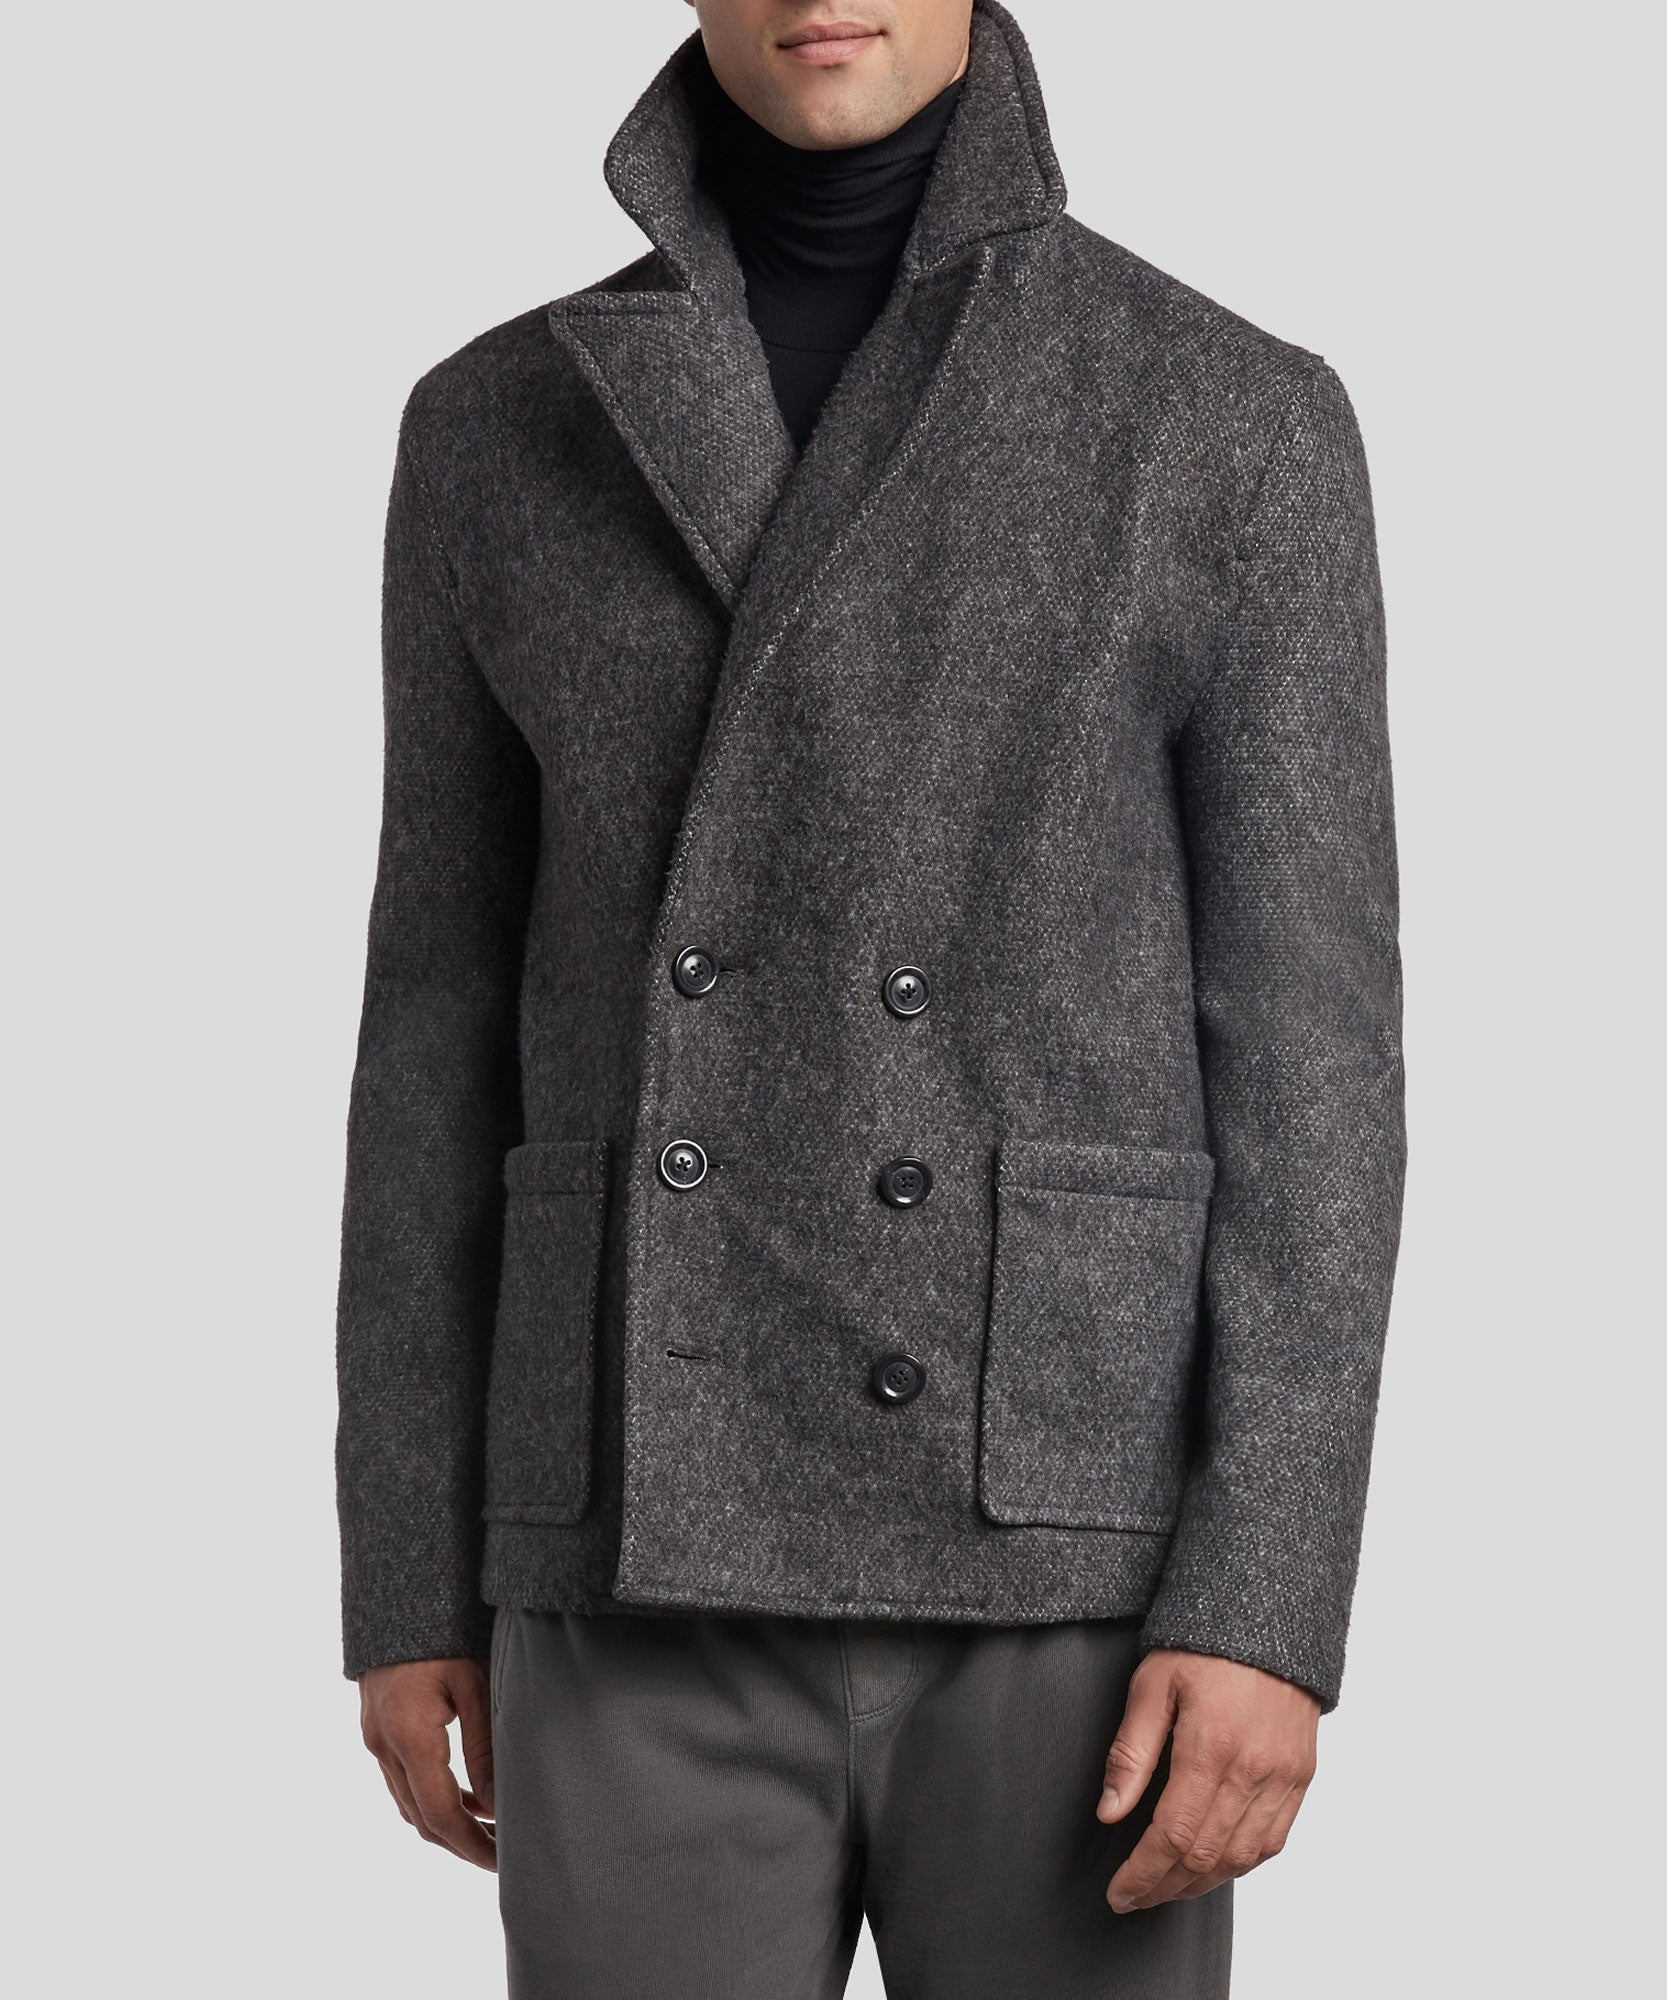 Black and Grey Fleece Peacoat - Men's Jacket by ATM Anthony Thomas Melillo